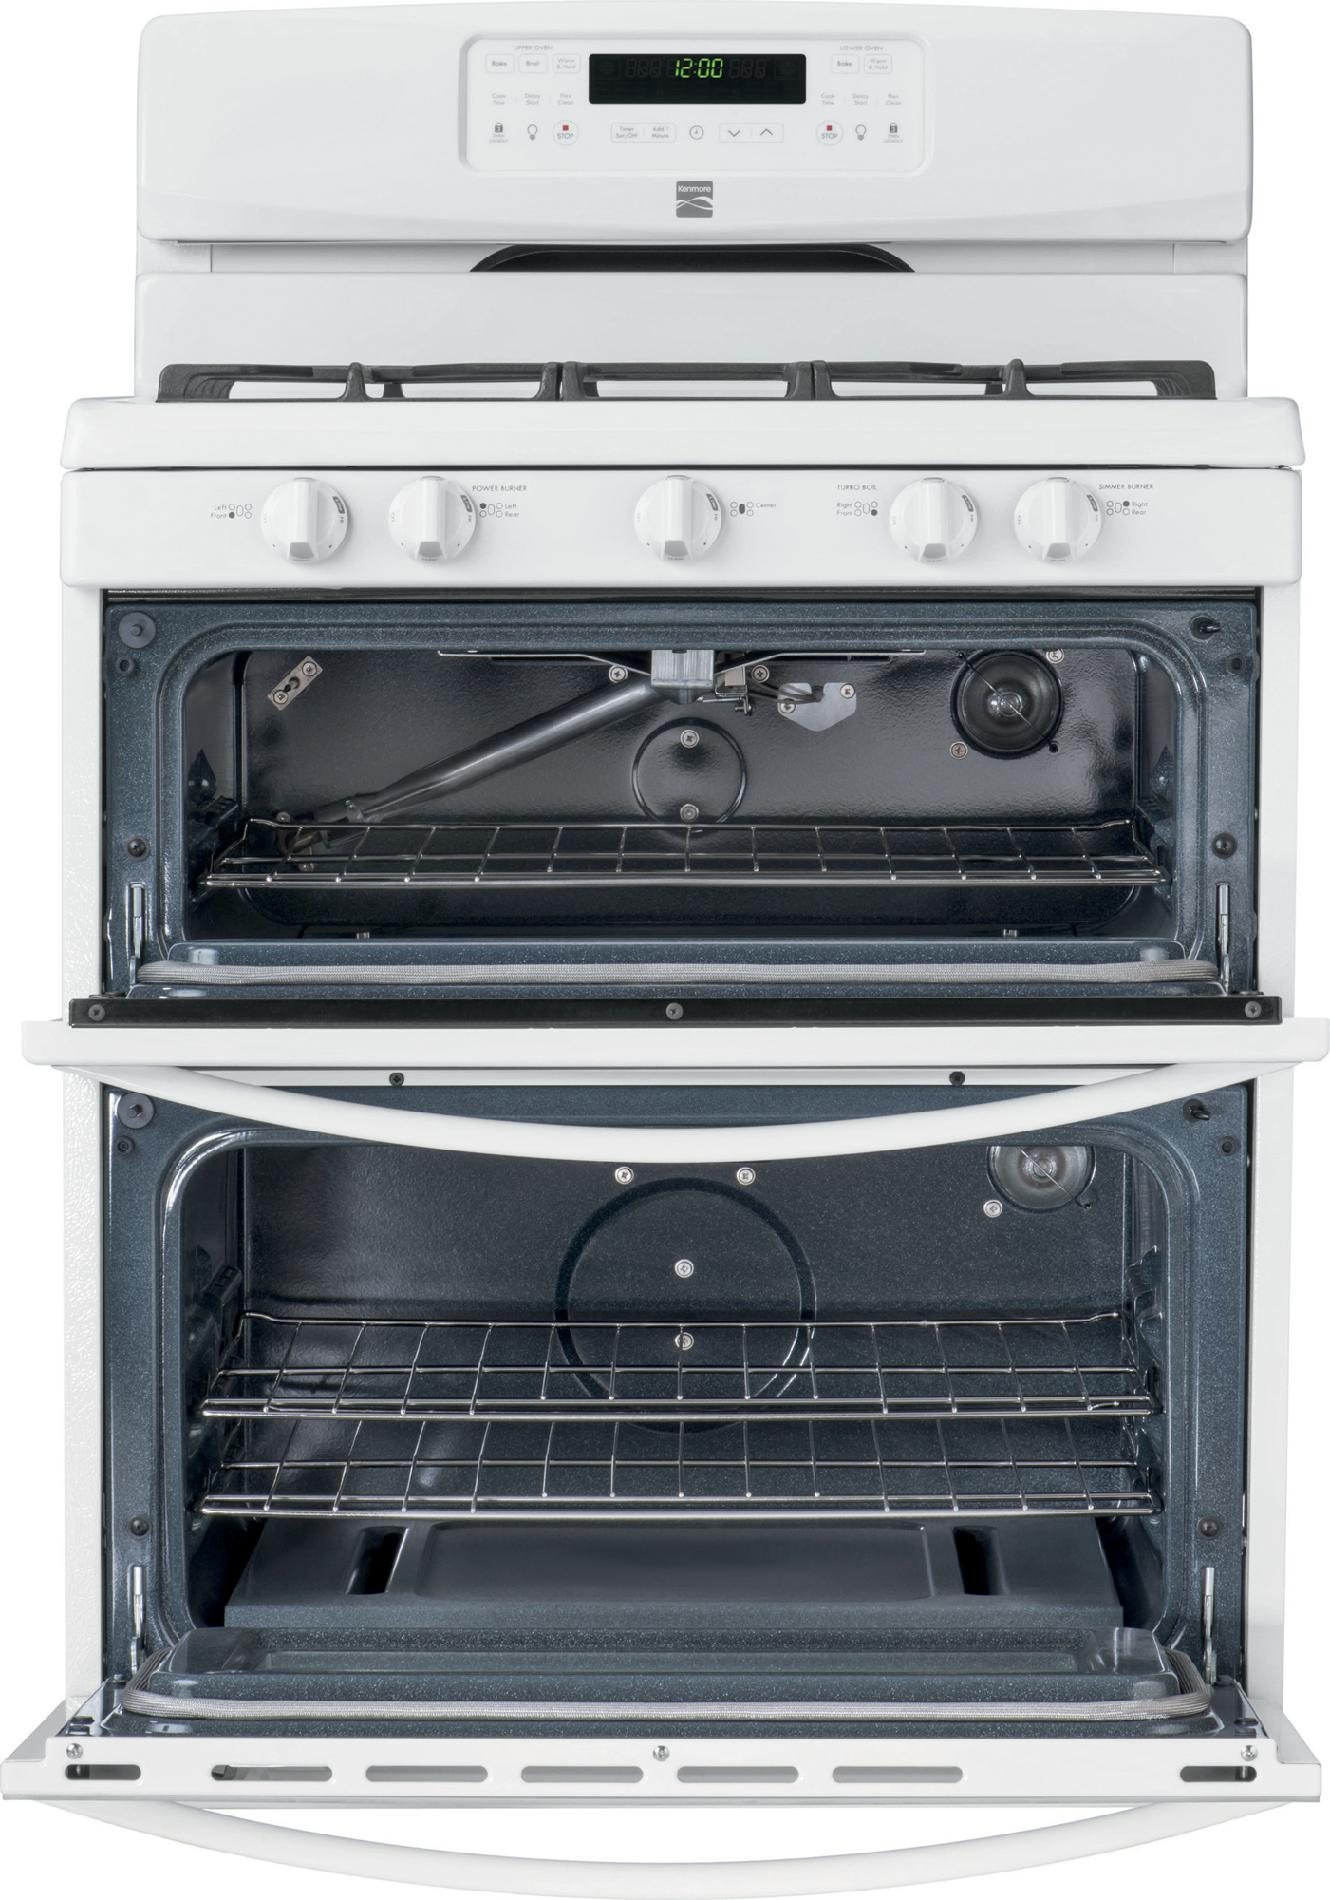 Kenmore 5.8 cu. ft. Double-Oven Gas Range - White